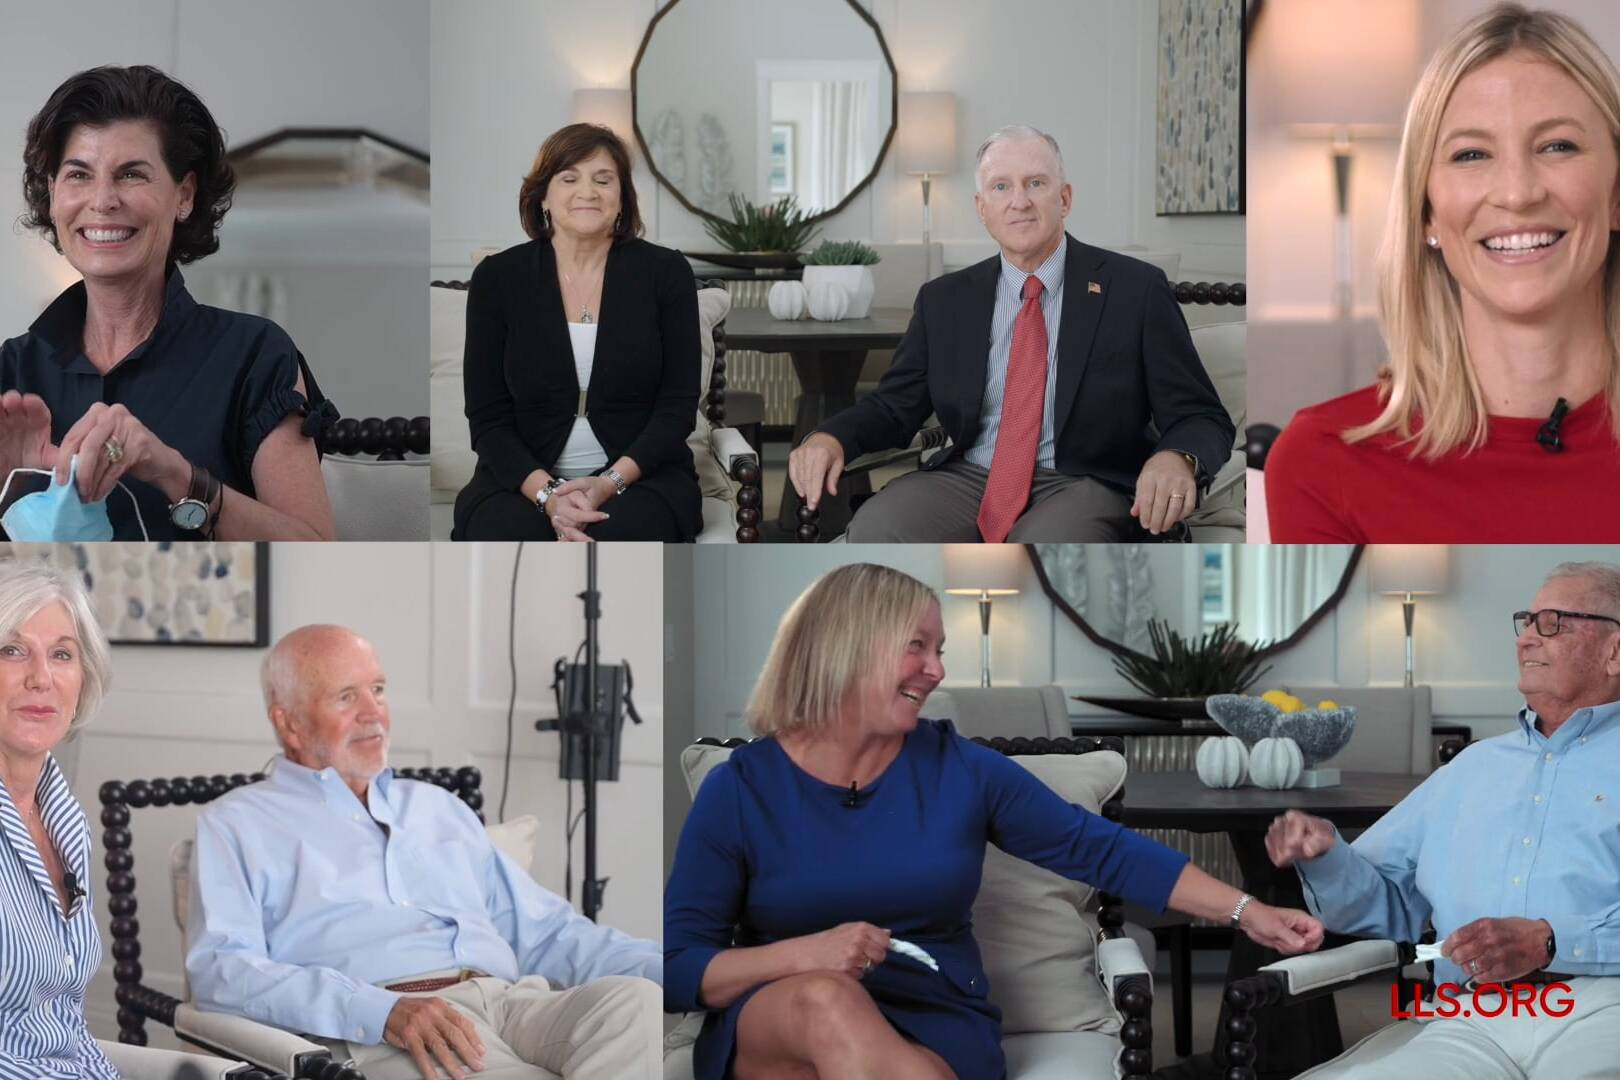 Our video services created video which featured six stories for LLS in Vero Beach.